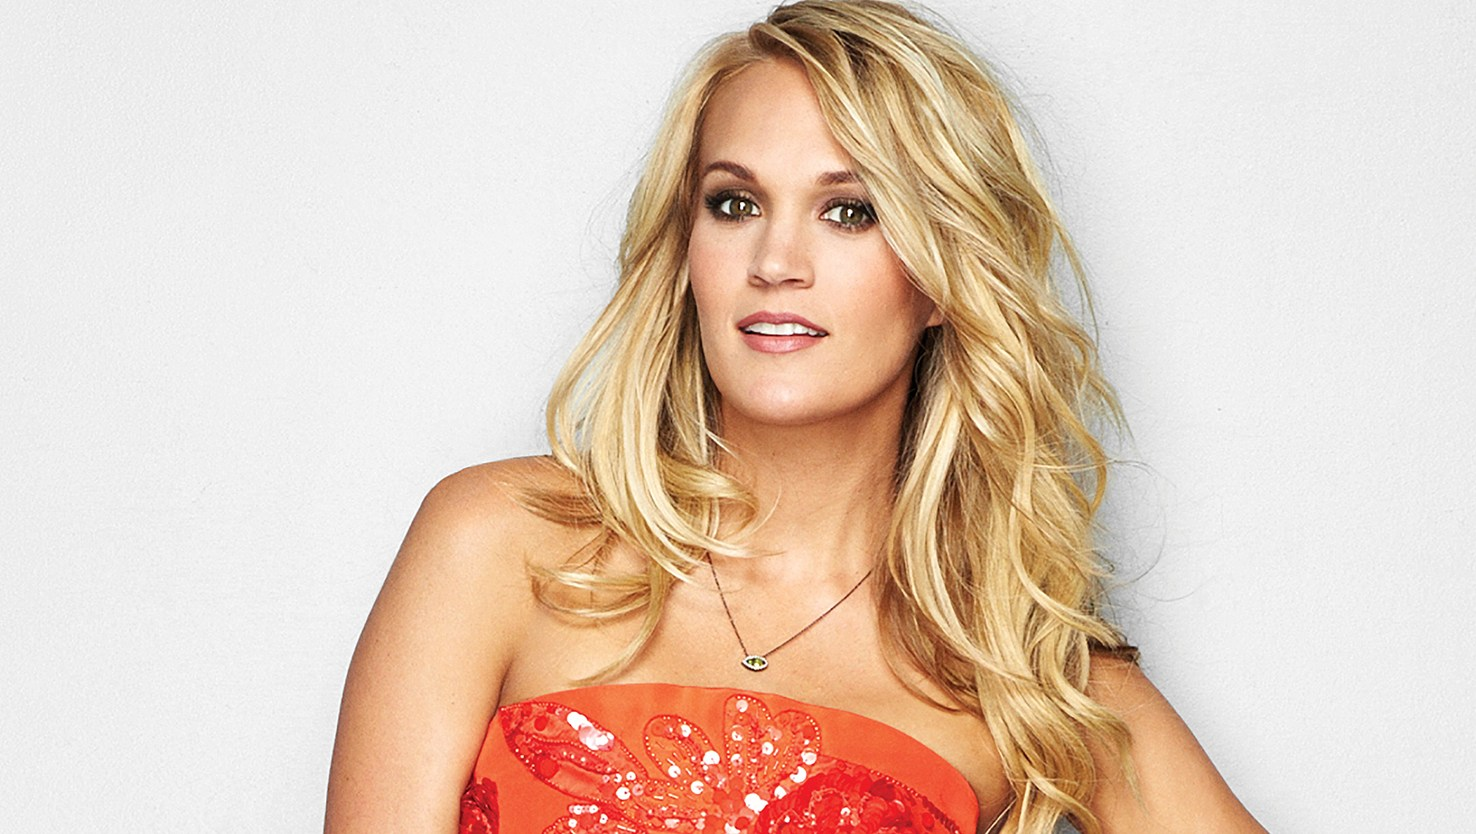 Carrie Underwood for Redbook Magazine.